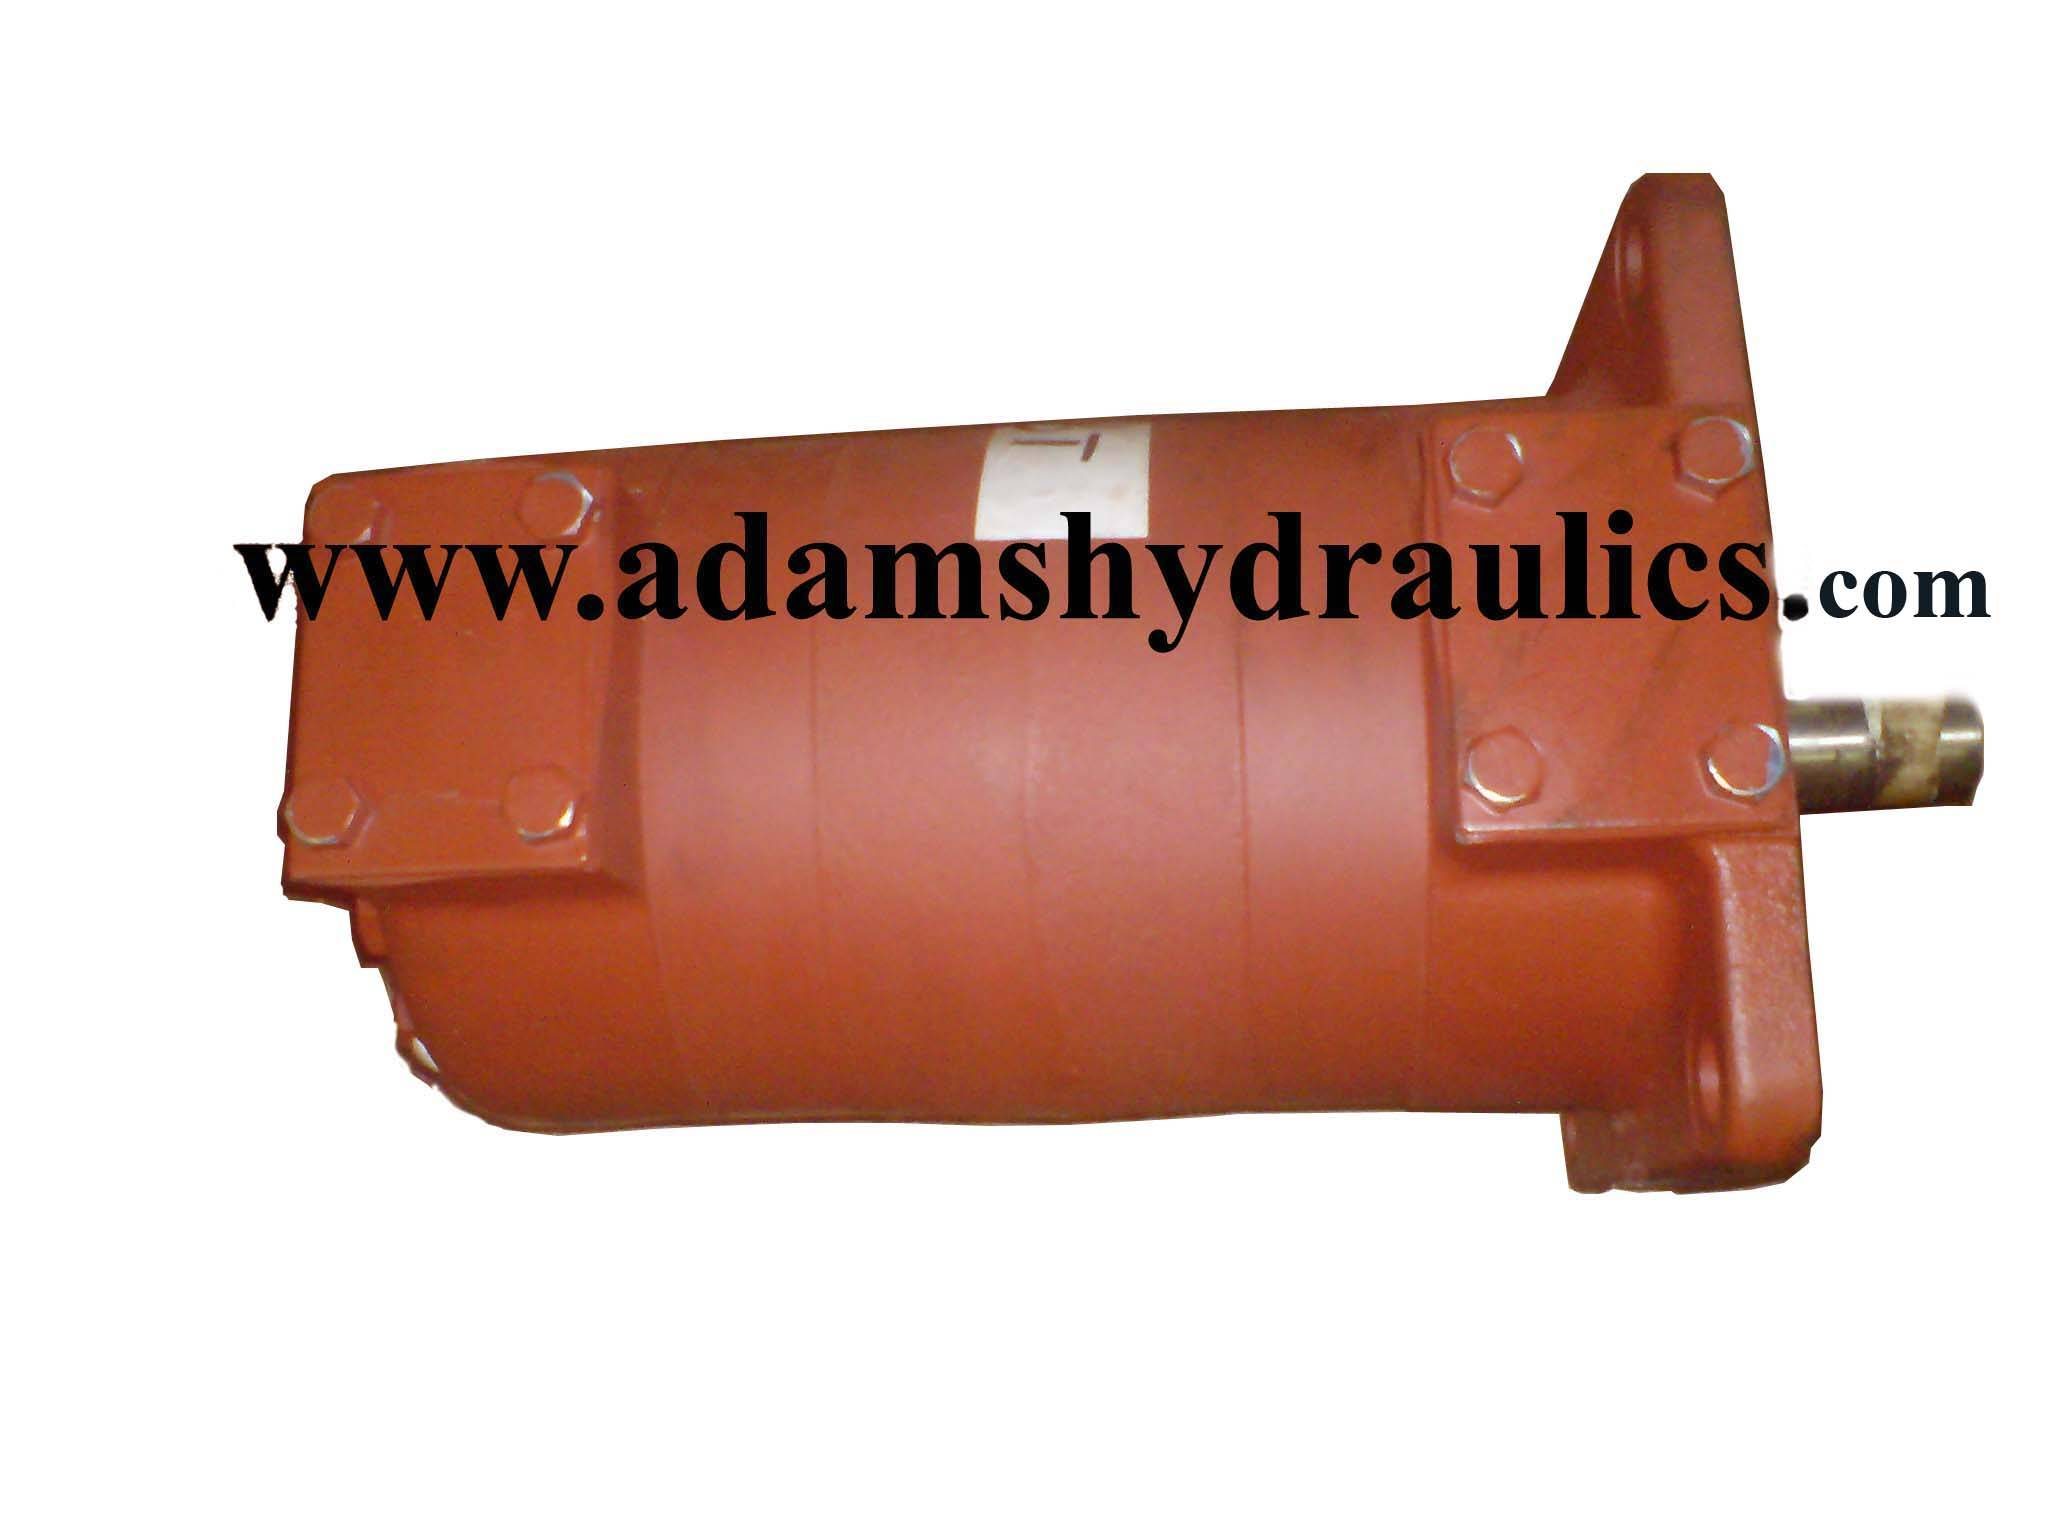 IHI 66N 67 67, 66N 67 57, 66N 57 67 Pumps, Adams Hydraulics